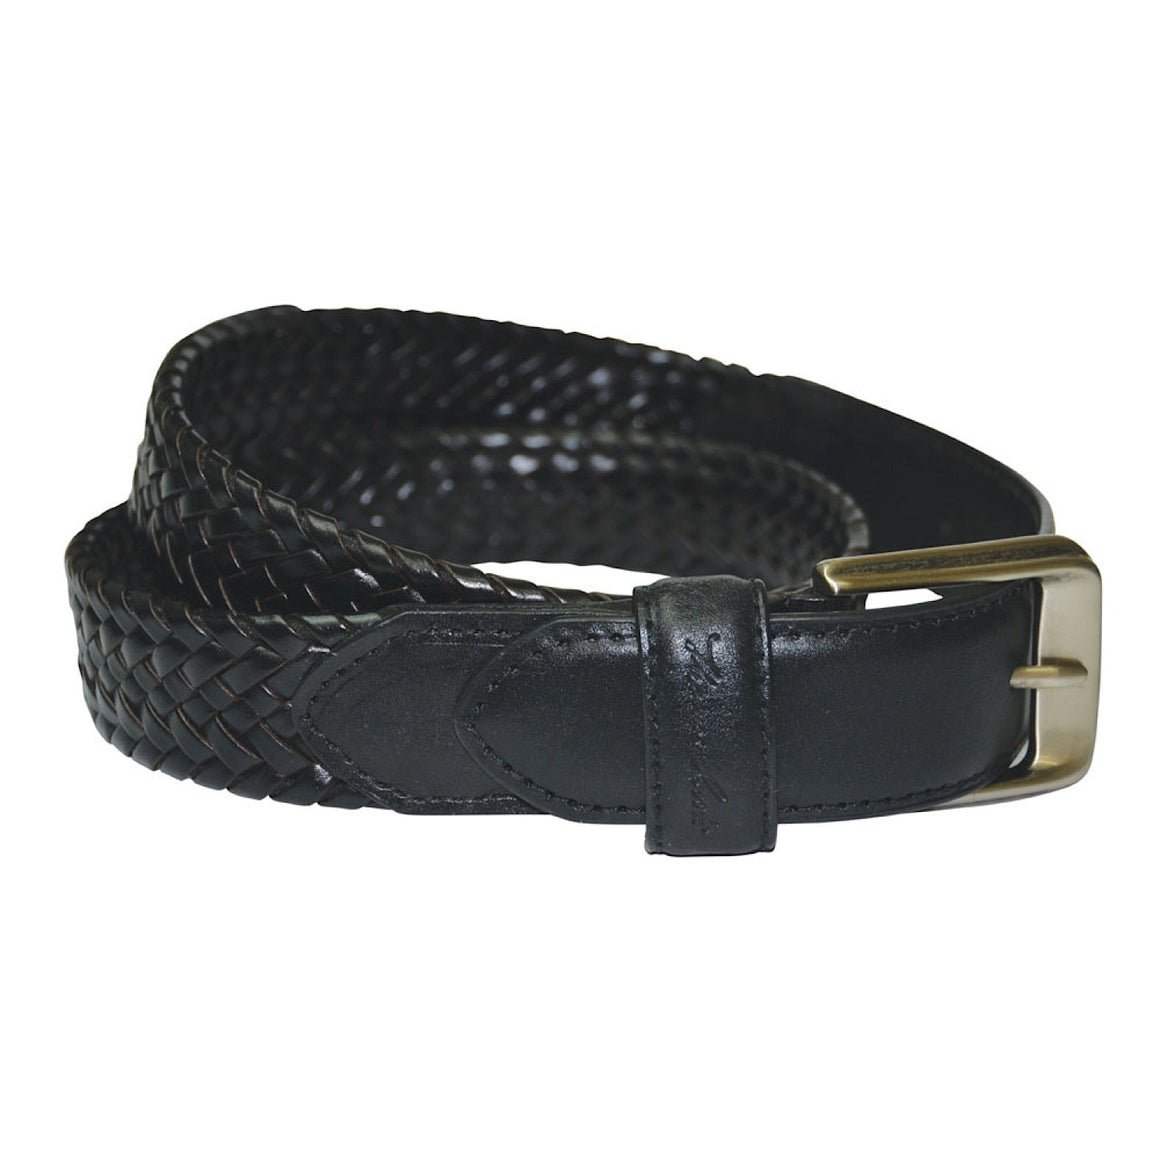 Thomas Cook Harry Leather Braided Belt Black